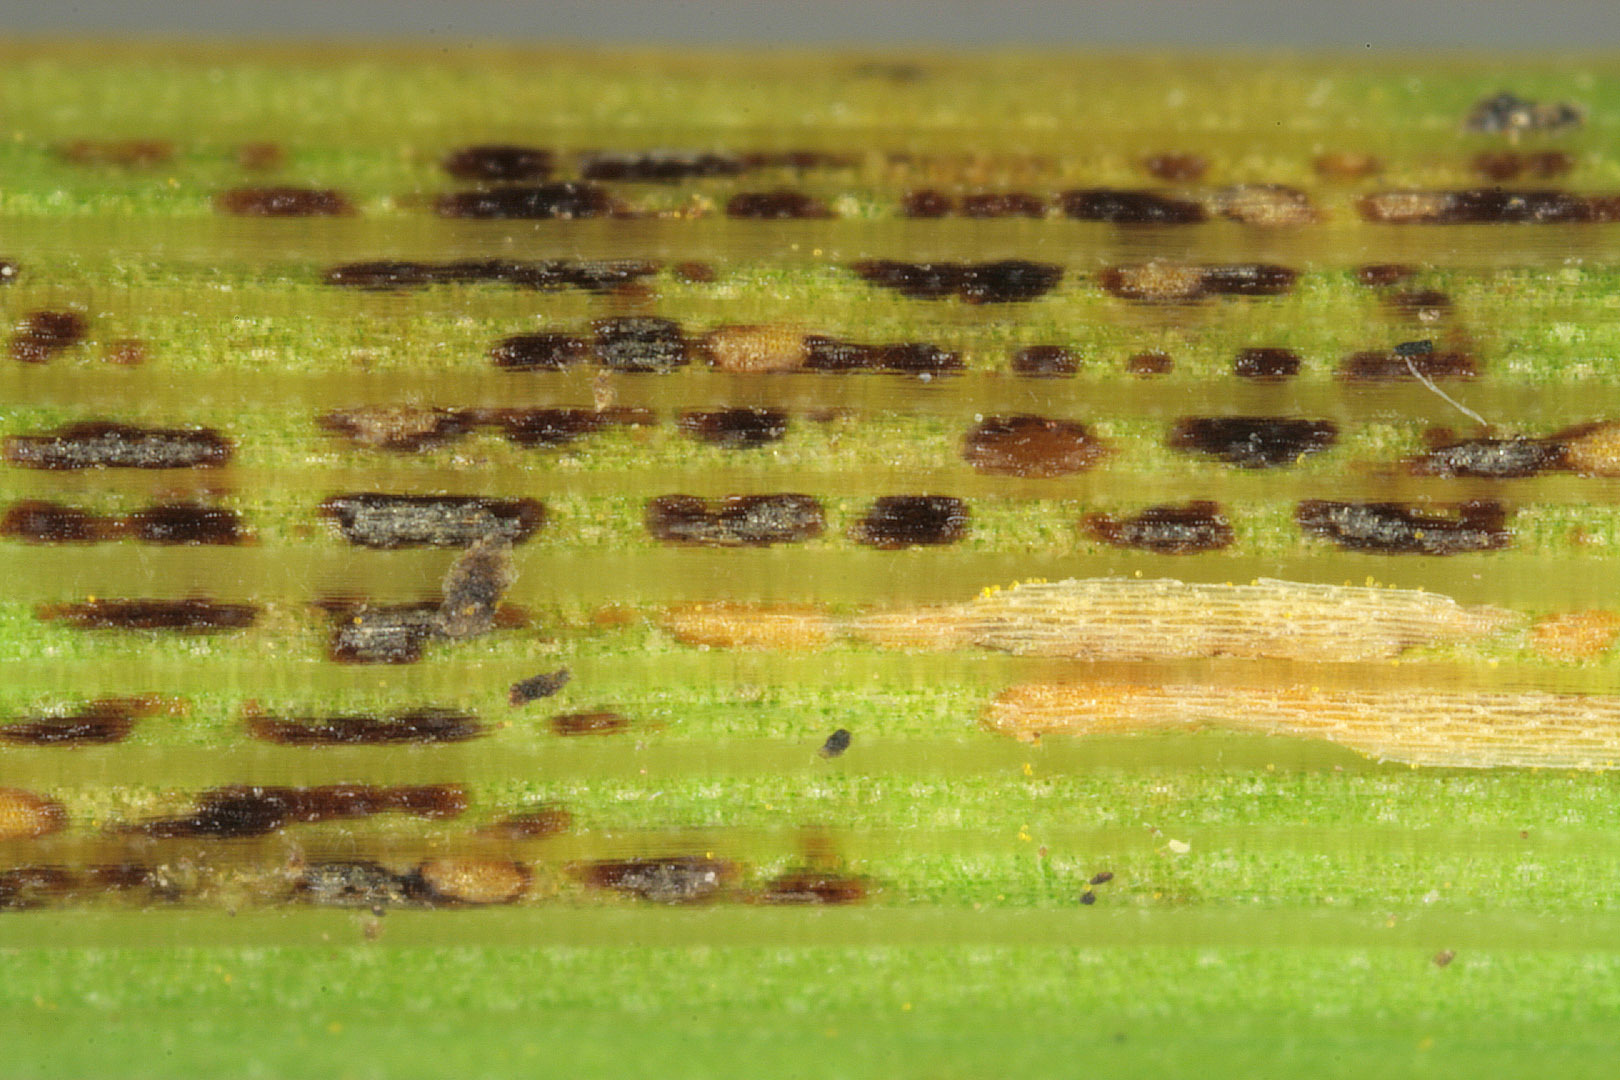 Image of Crown rust of oats